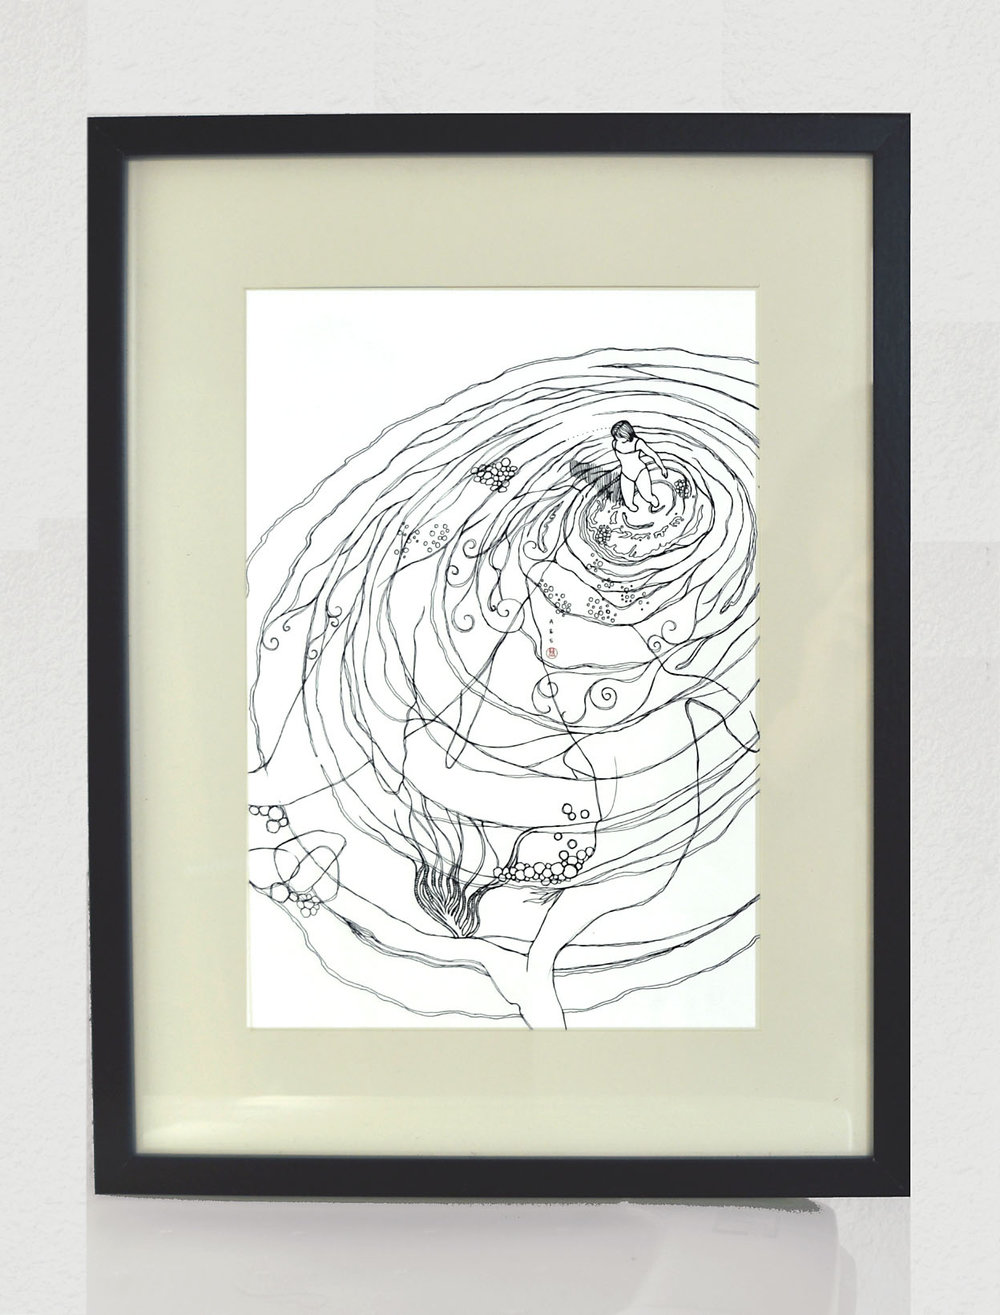 Are you Ready for Emotional world? / pen drawing in simple black frame.